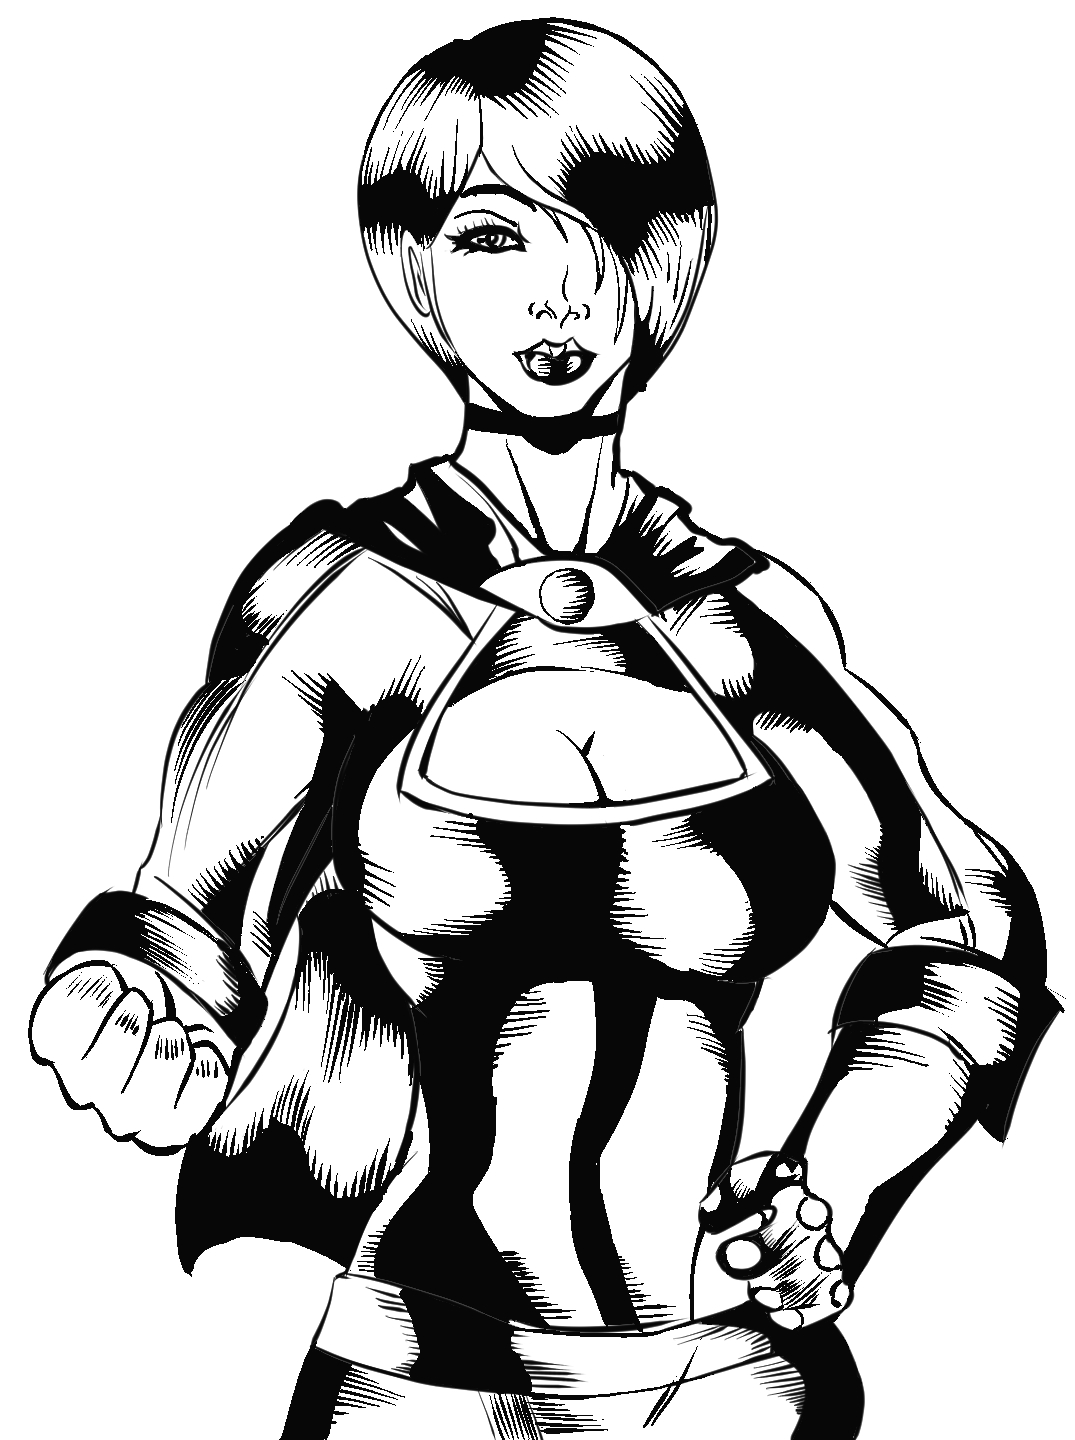 Some woman ink